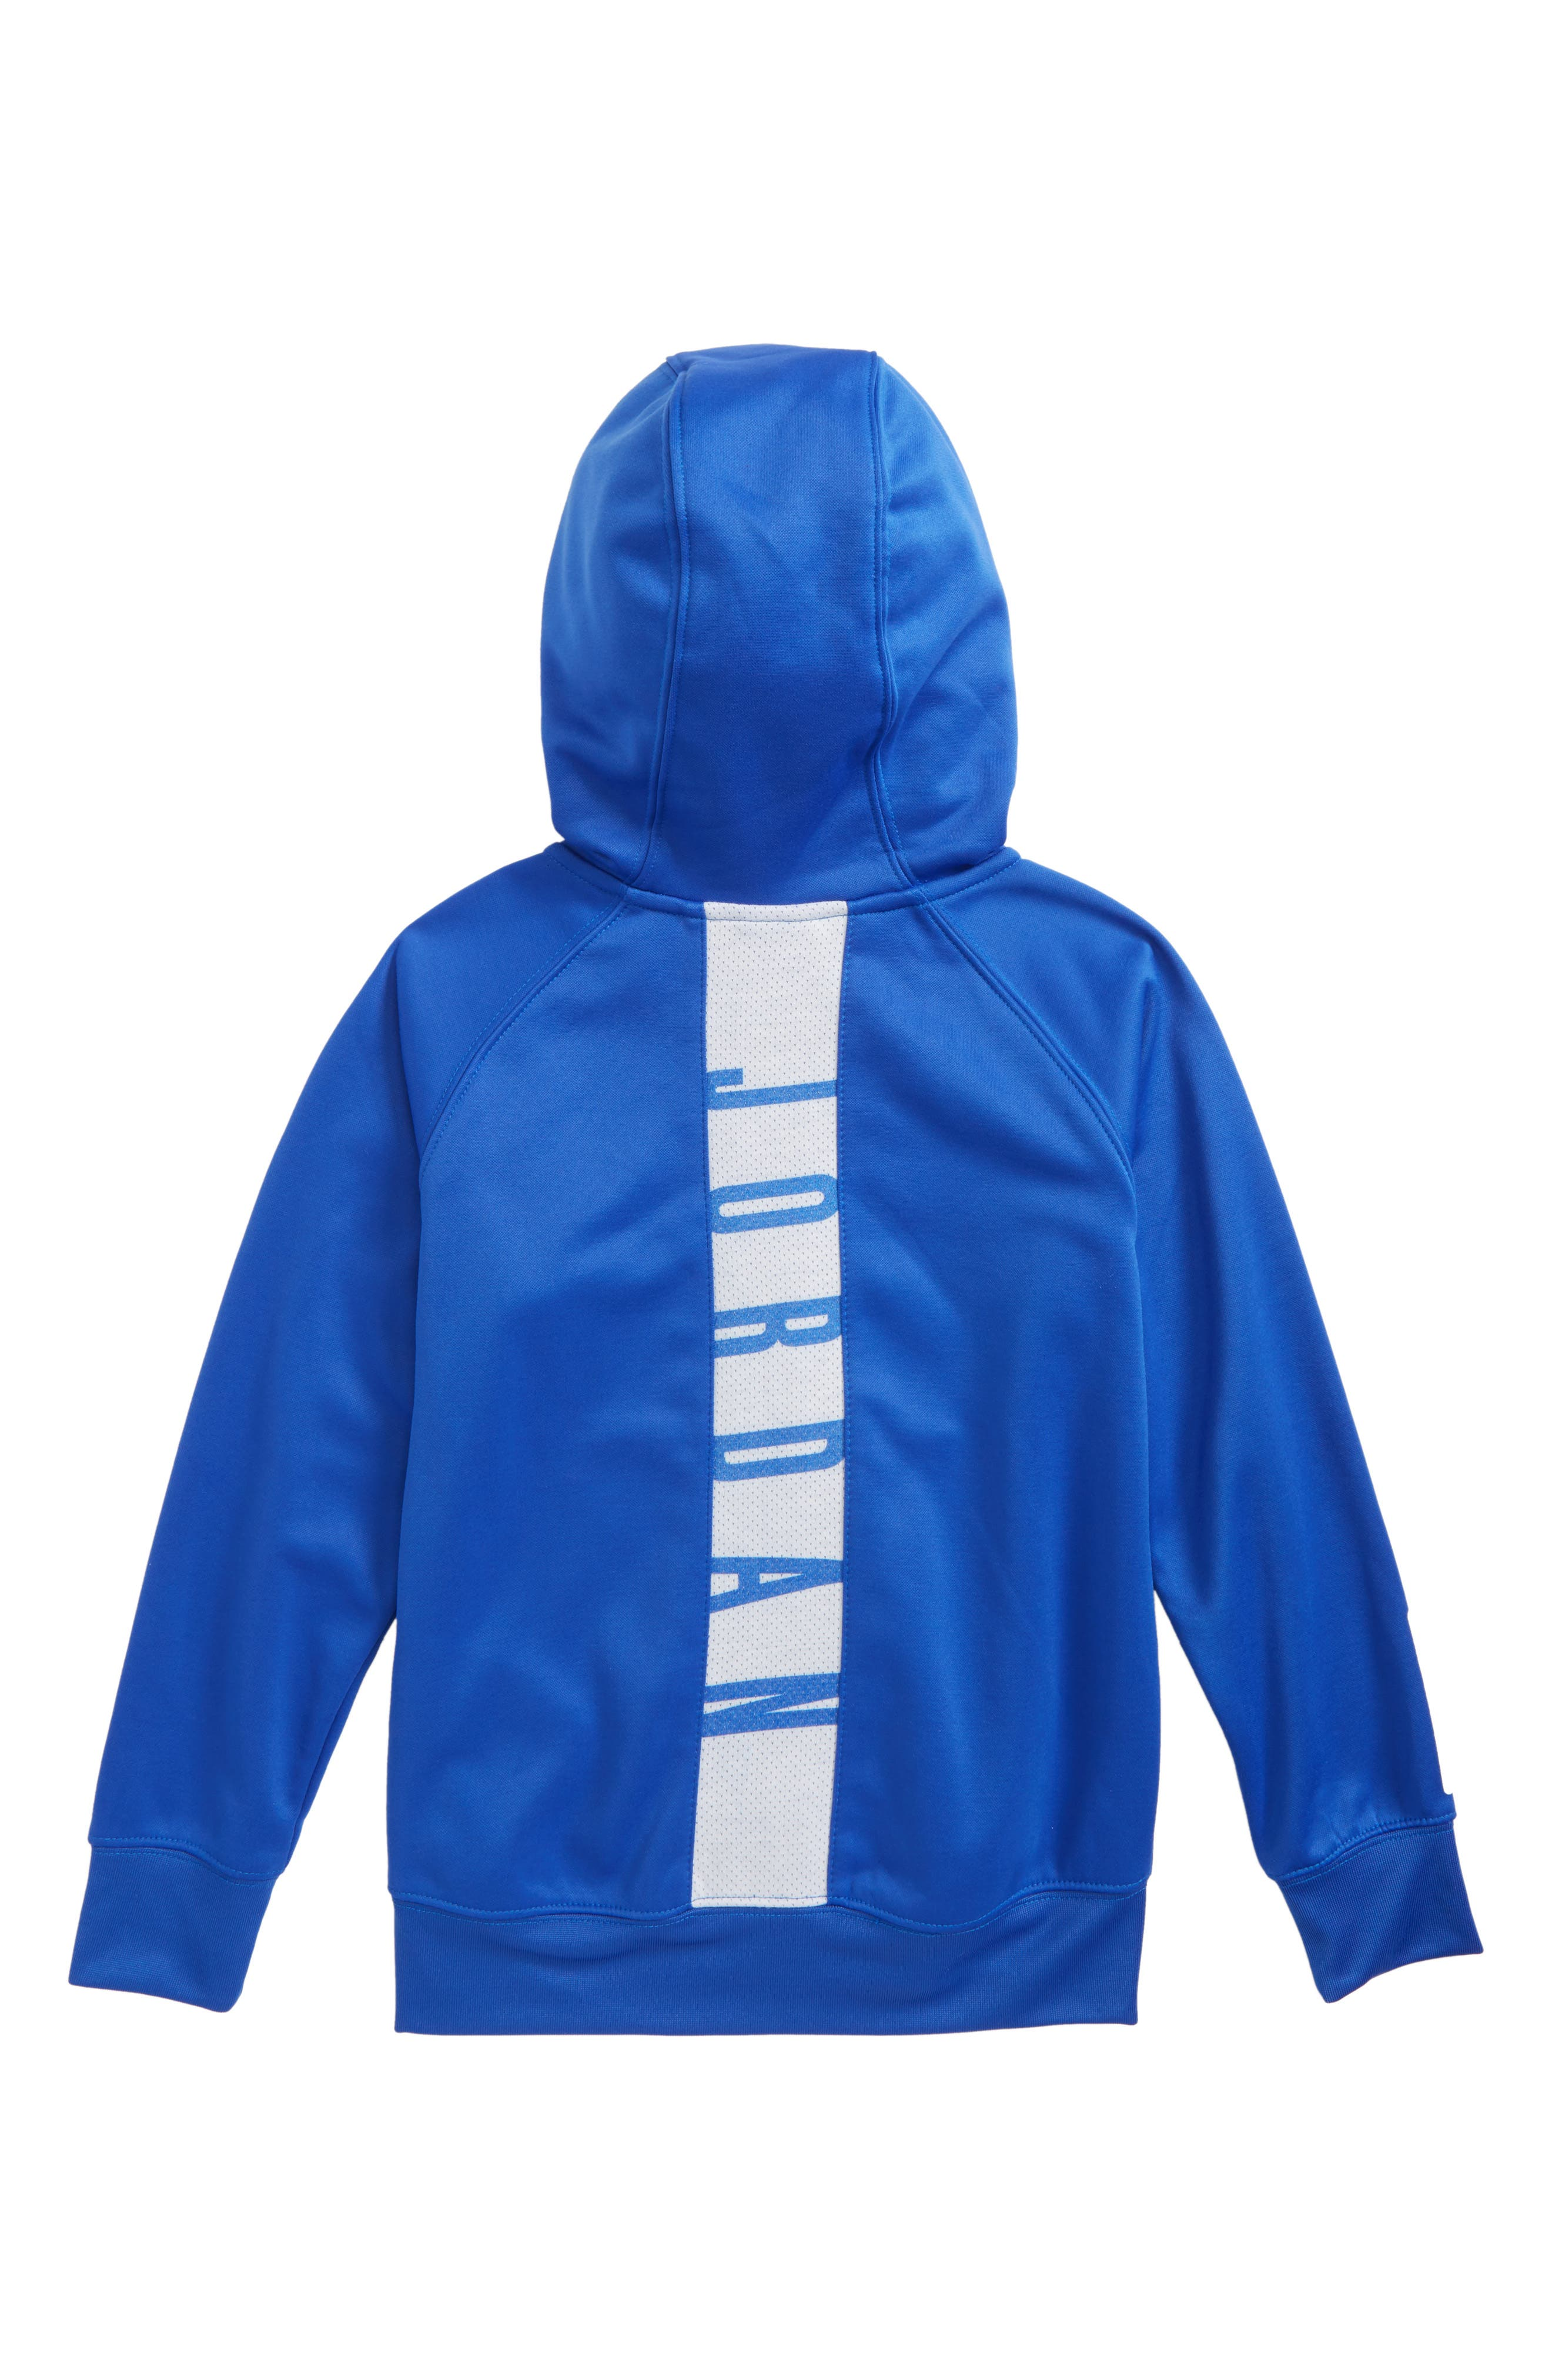 Jordan Dry 23 Alpha FZ Therma-FIT Zip Hoodie,                             Alternate thumbnail 2, color,                             Hyper Royal